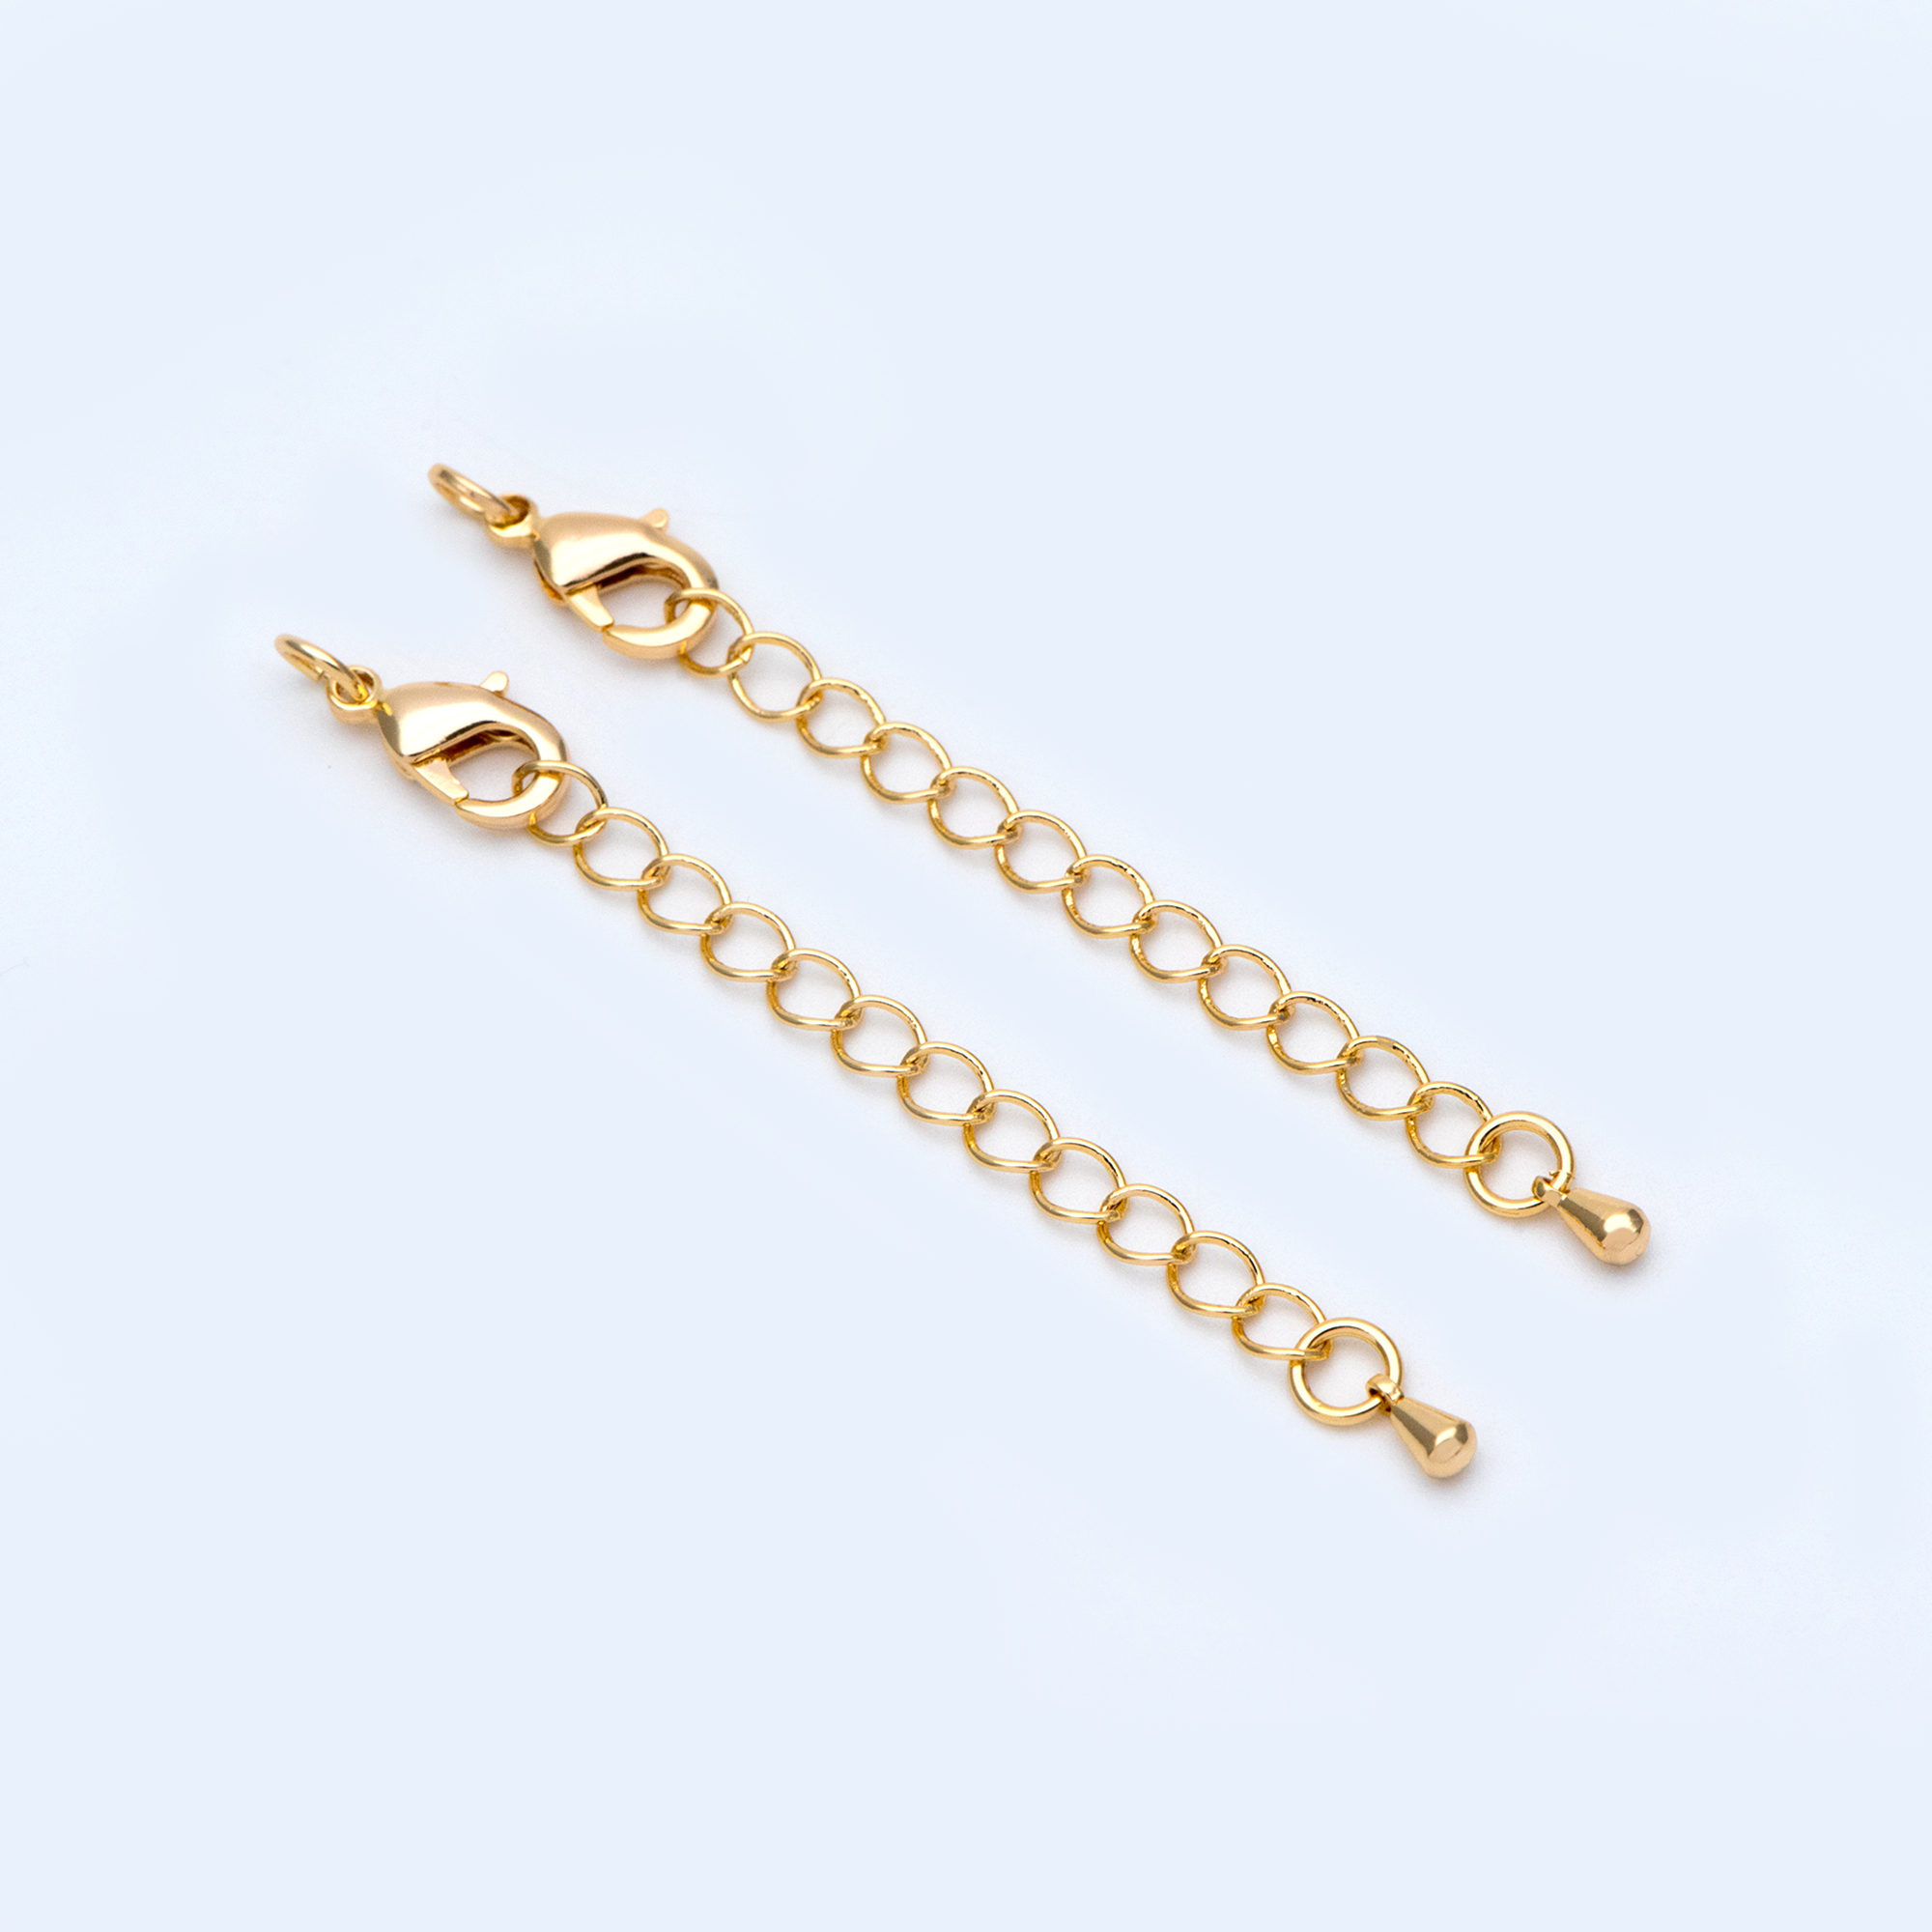 10pcs Lobster Claw Clasps With Extender Chain 72mm, Gold Plated Brass, 3.8mm Wide Extension Chain With Jump Rings (GB-1013)